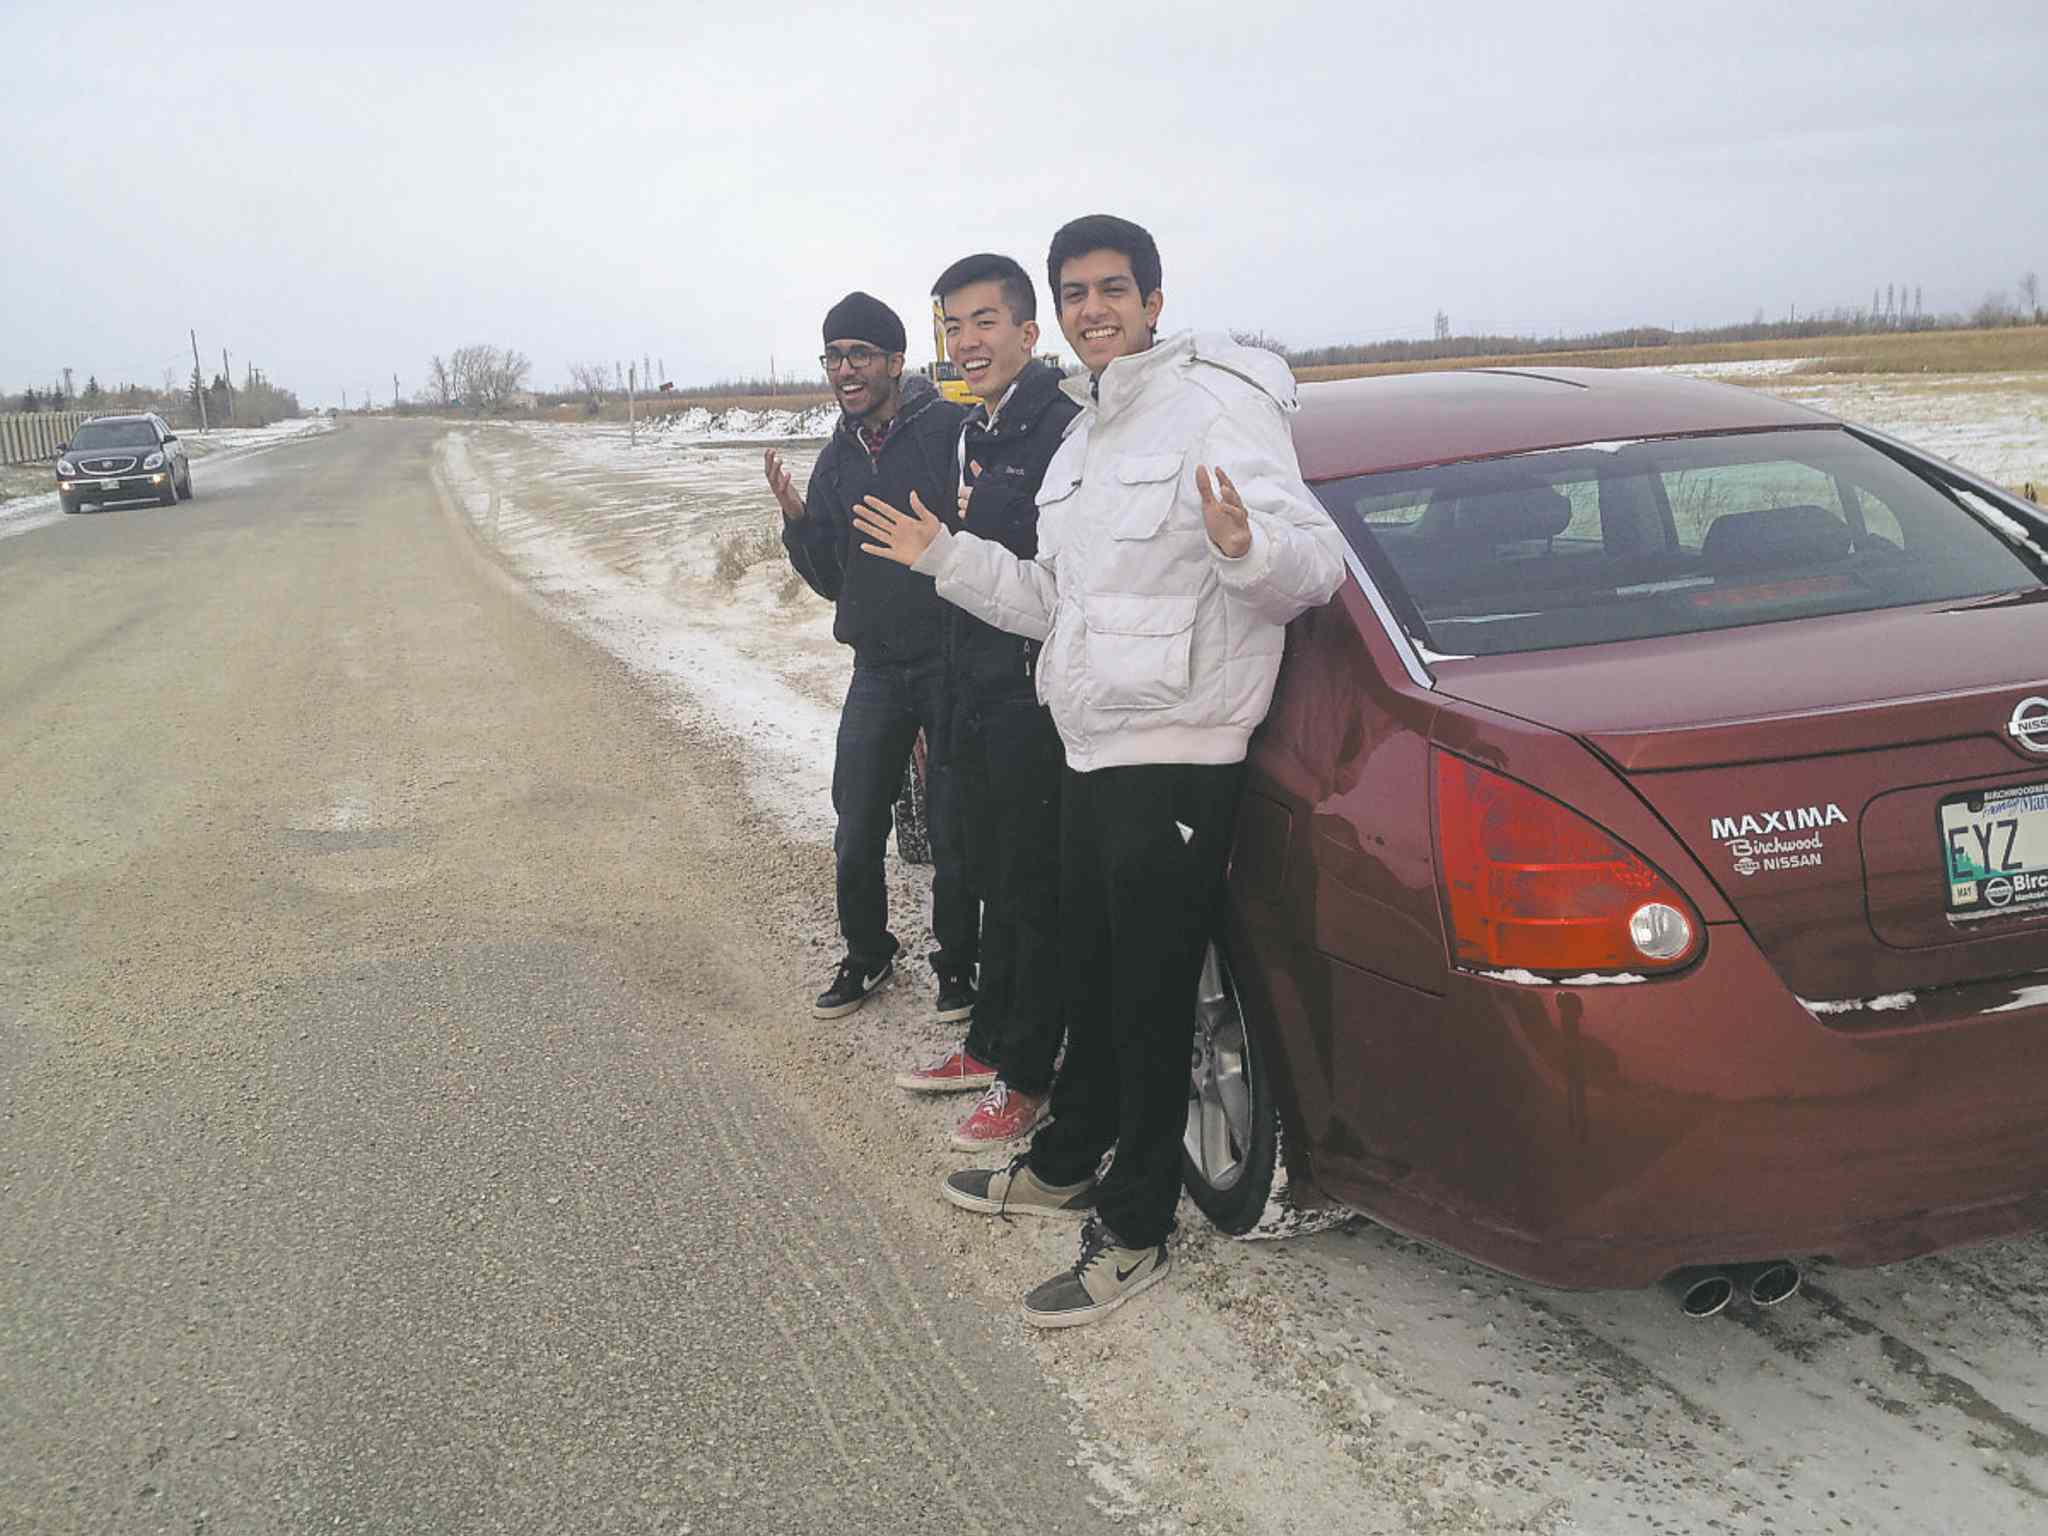 Maples Collegiate students Gurucharanpreet Buttar, Billy Hung and Jay Punj on a stretchy of dusty old Pipeline Road, which is about to get a facelift.